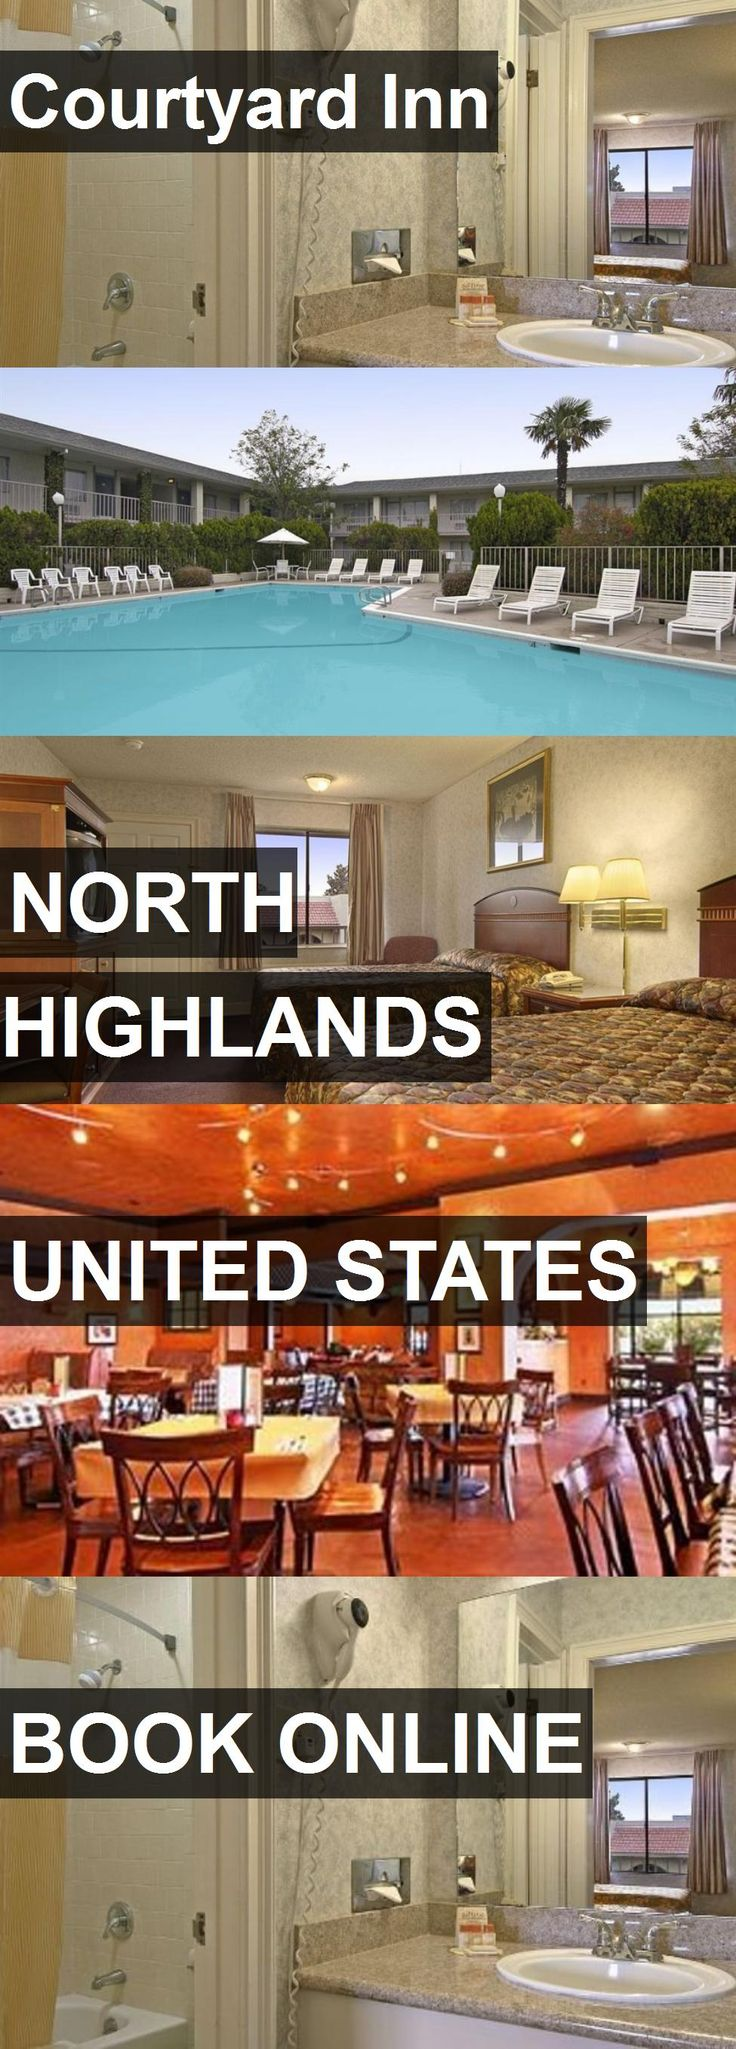 Hotel Courtyard Inn in North Highlands, United States. For more information, photos, reviews and best prices please follow the link. #UnitedStates #NorthHighlands #travel #vacation #hotel